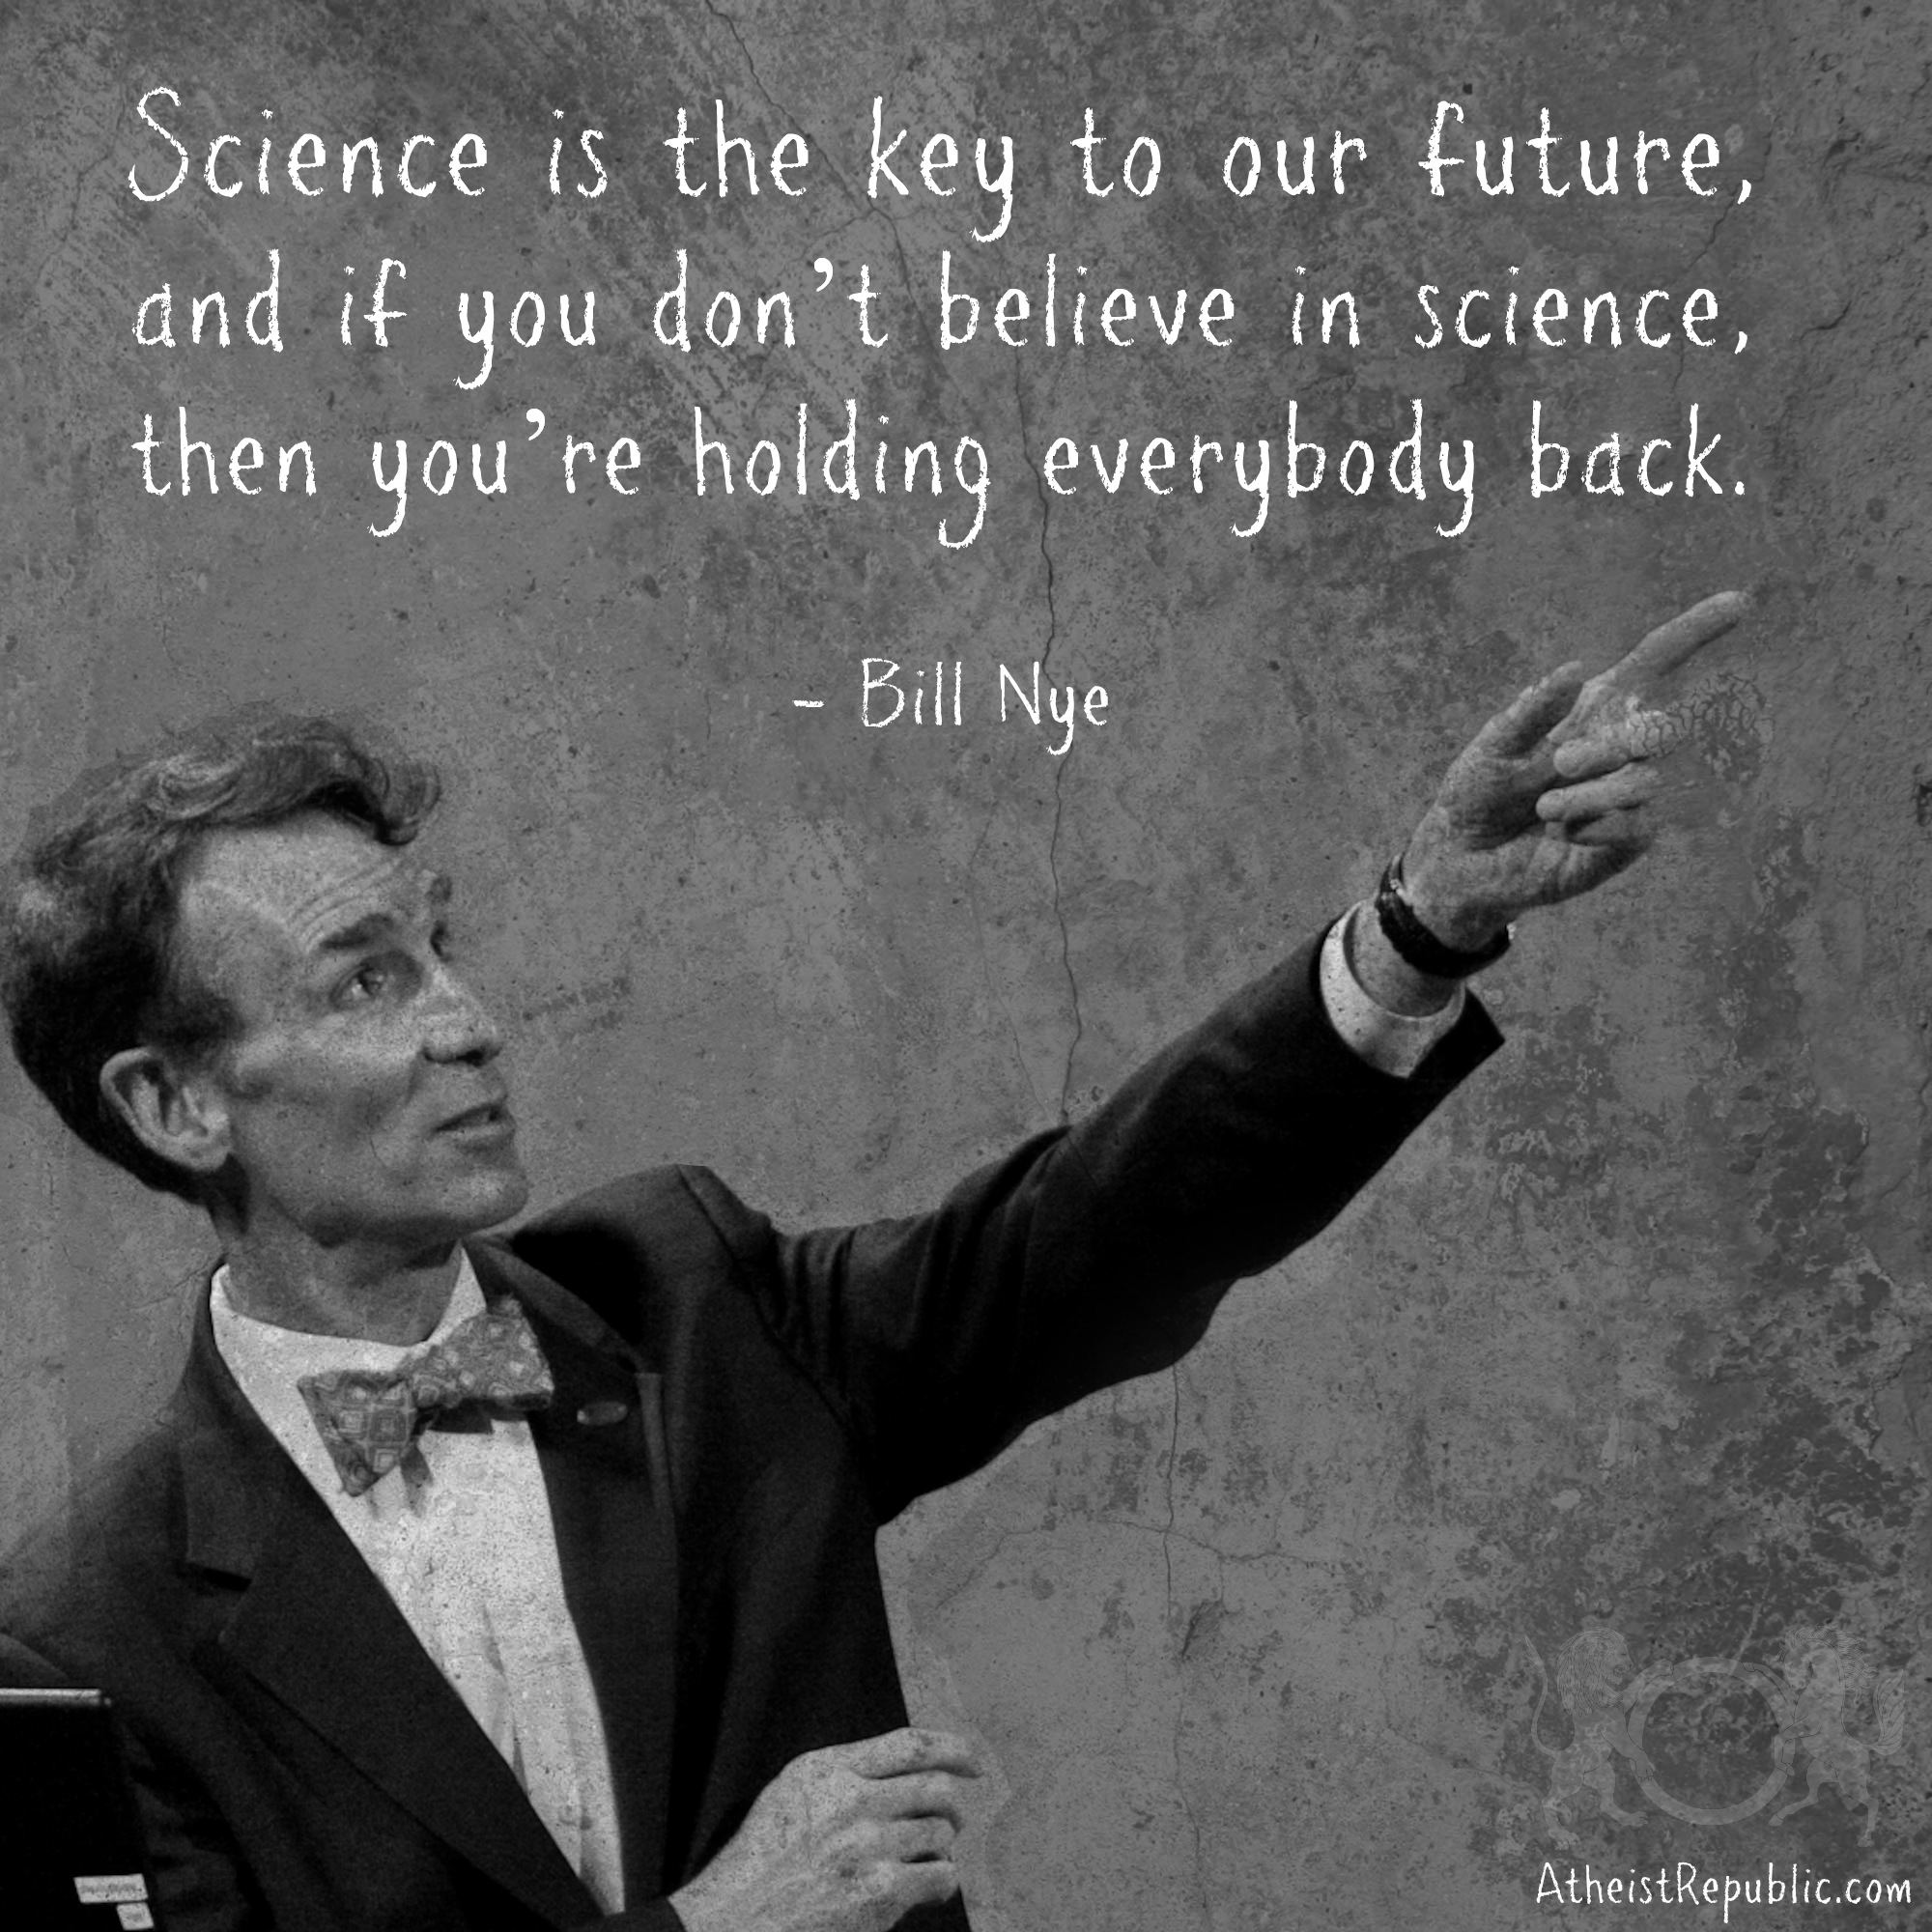 Science is the key to our future and if you don t believe